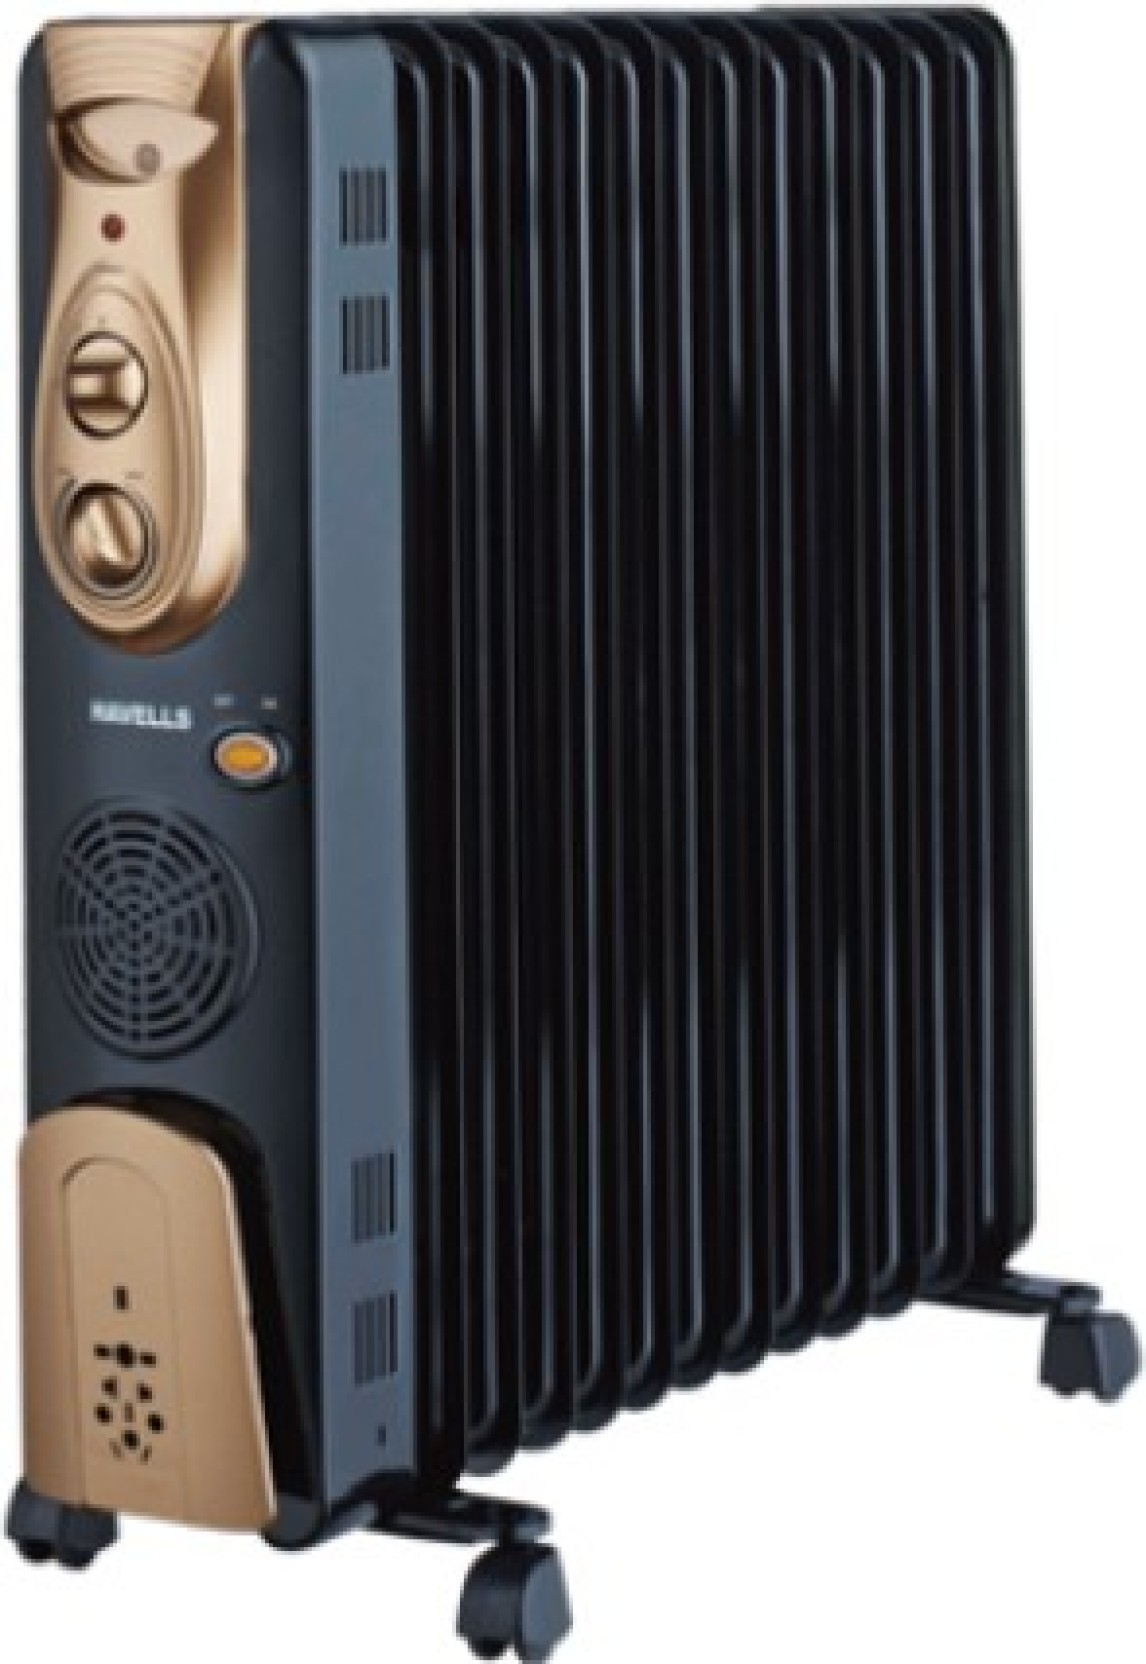 Havells Ofr 13 Fin With Ptc Fan Heater 2900w Oil Filled